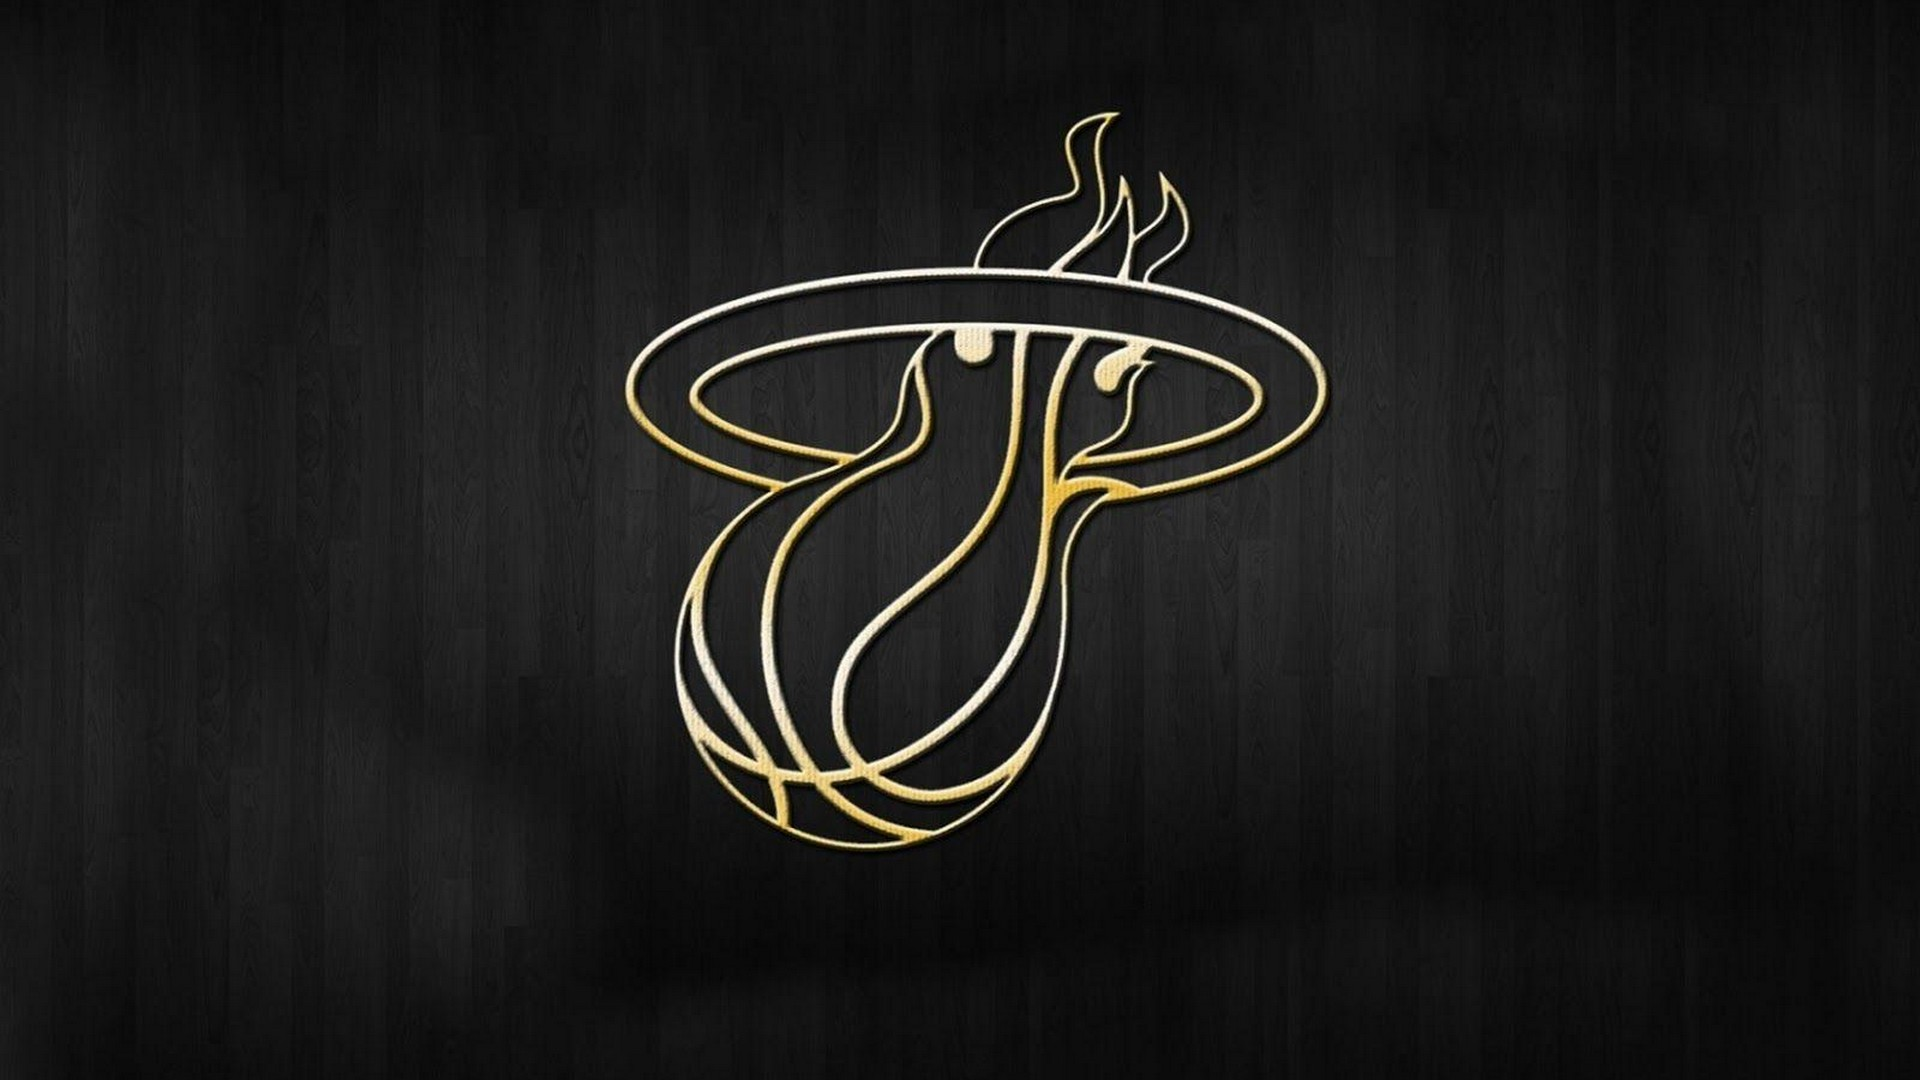 Miami Heat For Mac Wallpaper 2019 Basketball Wallpaper 1920x1080